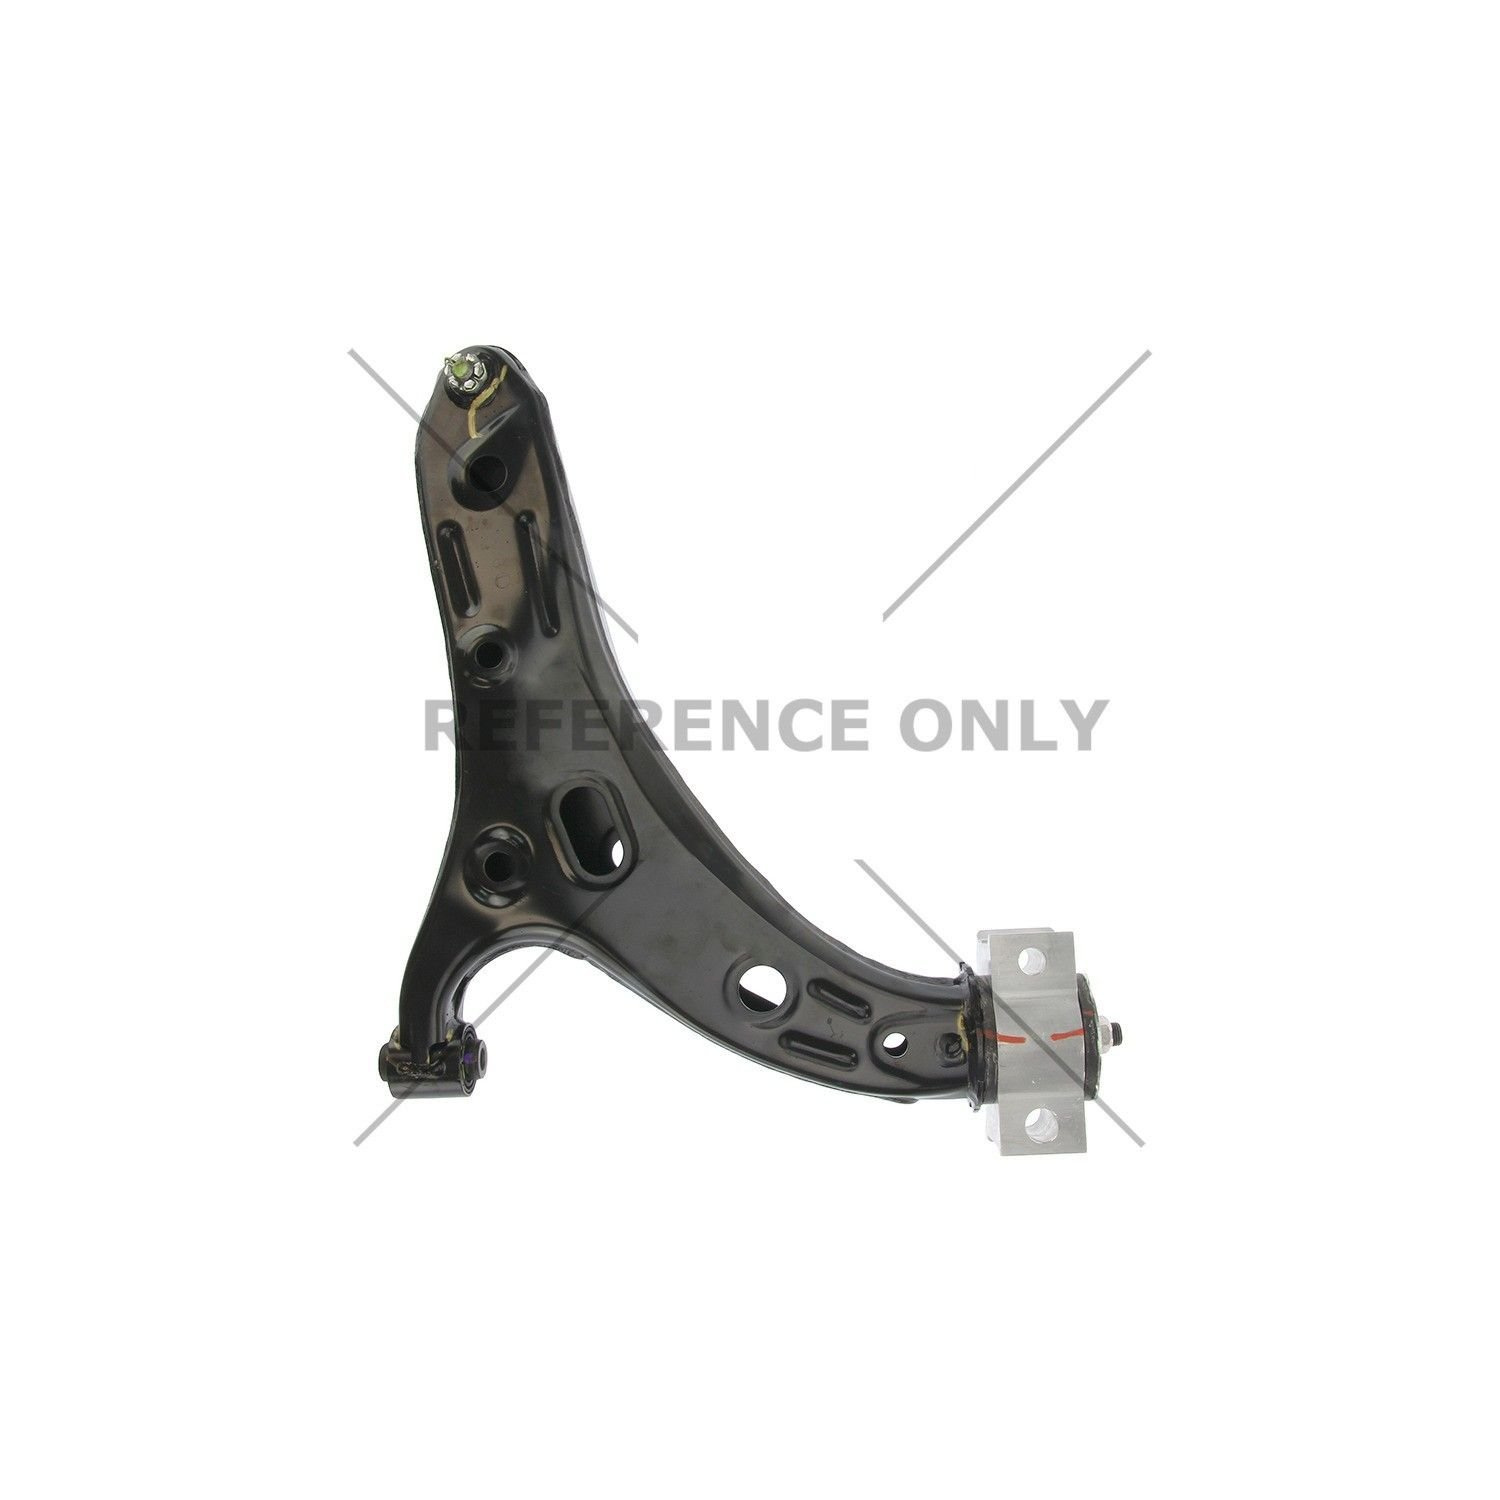 Dorman 522-235 Front Left Lower Suspension Control Arm and Ball Joint Assembly for Select Subaru Models